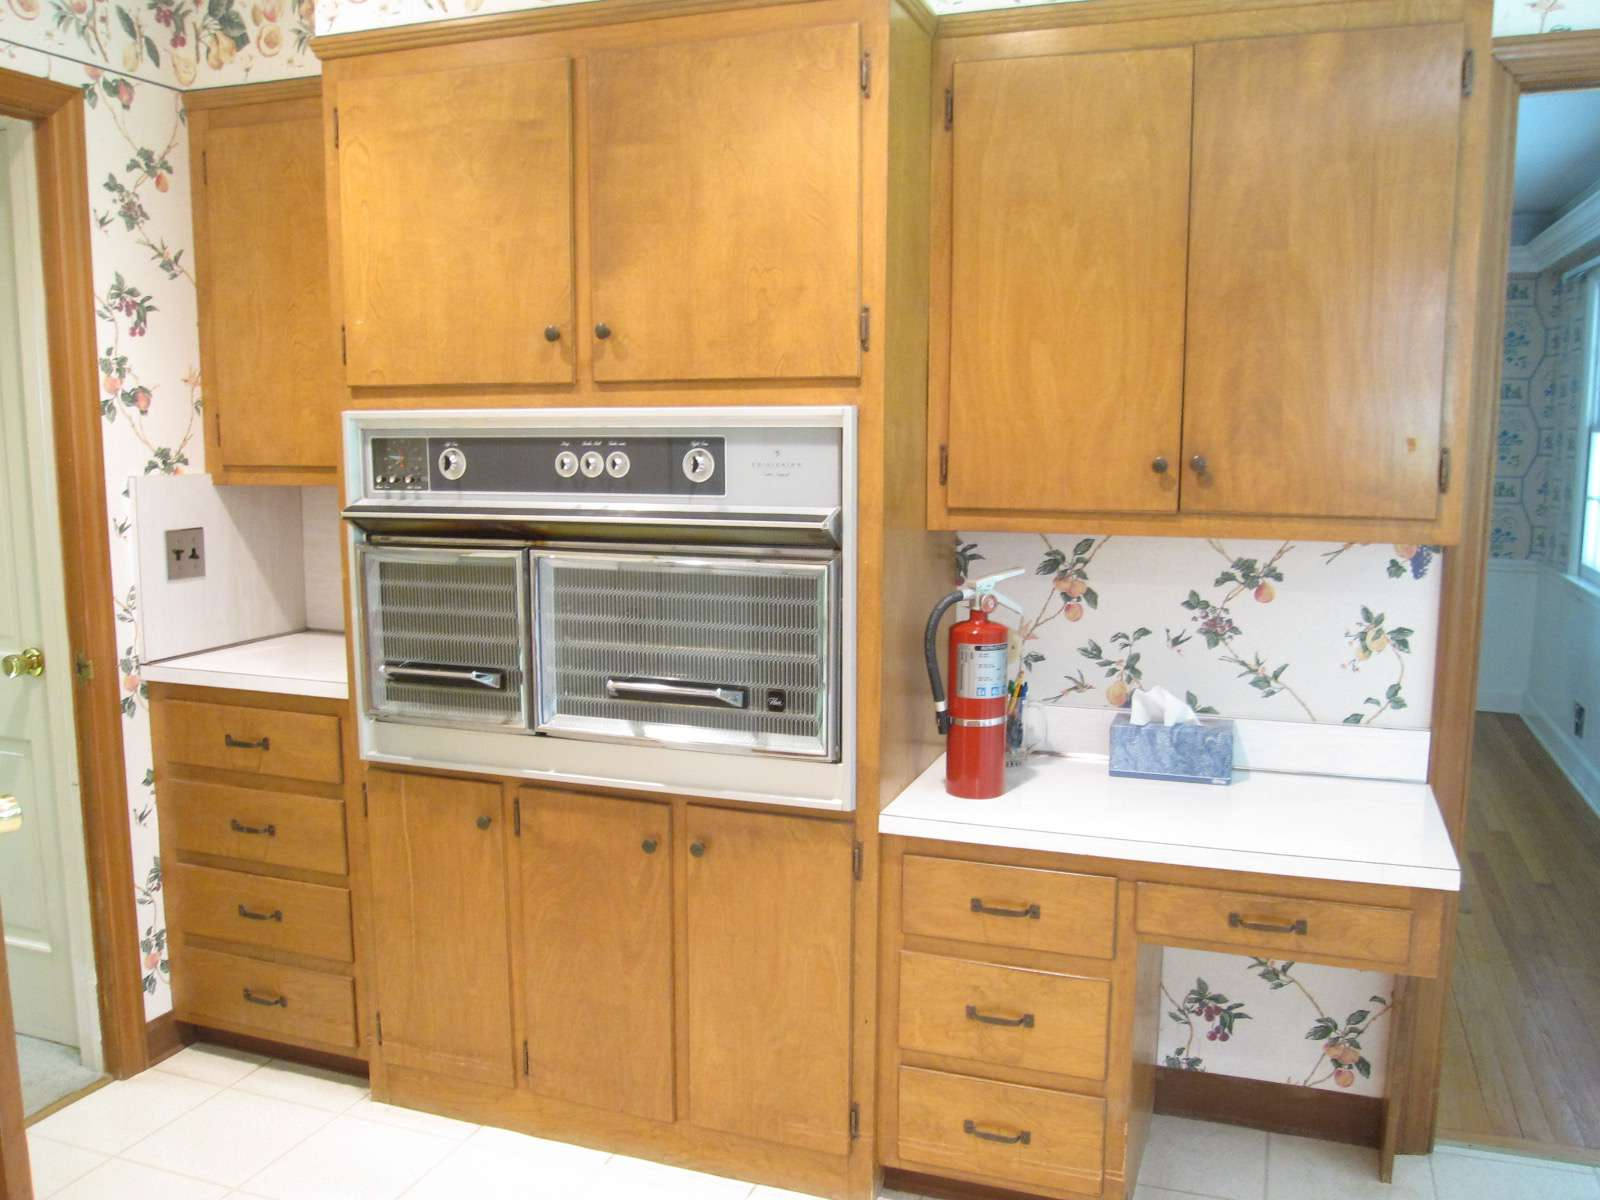 Makeover of the Week - 1960s kitchen before photo